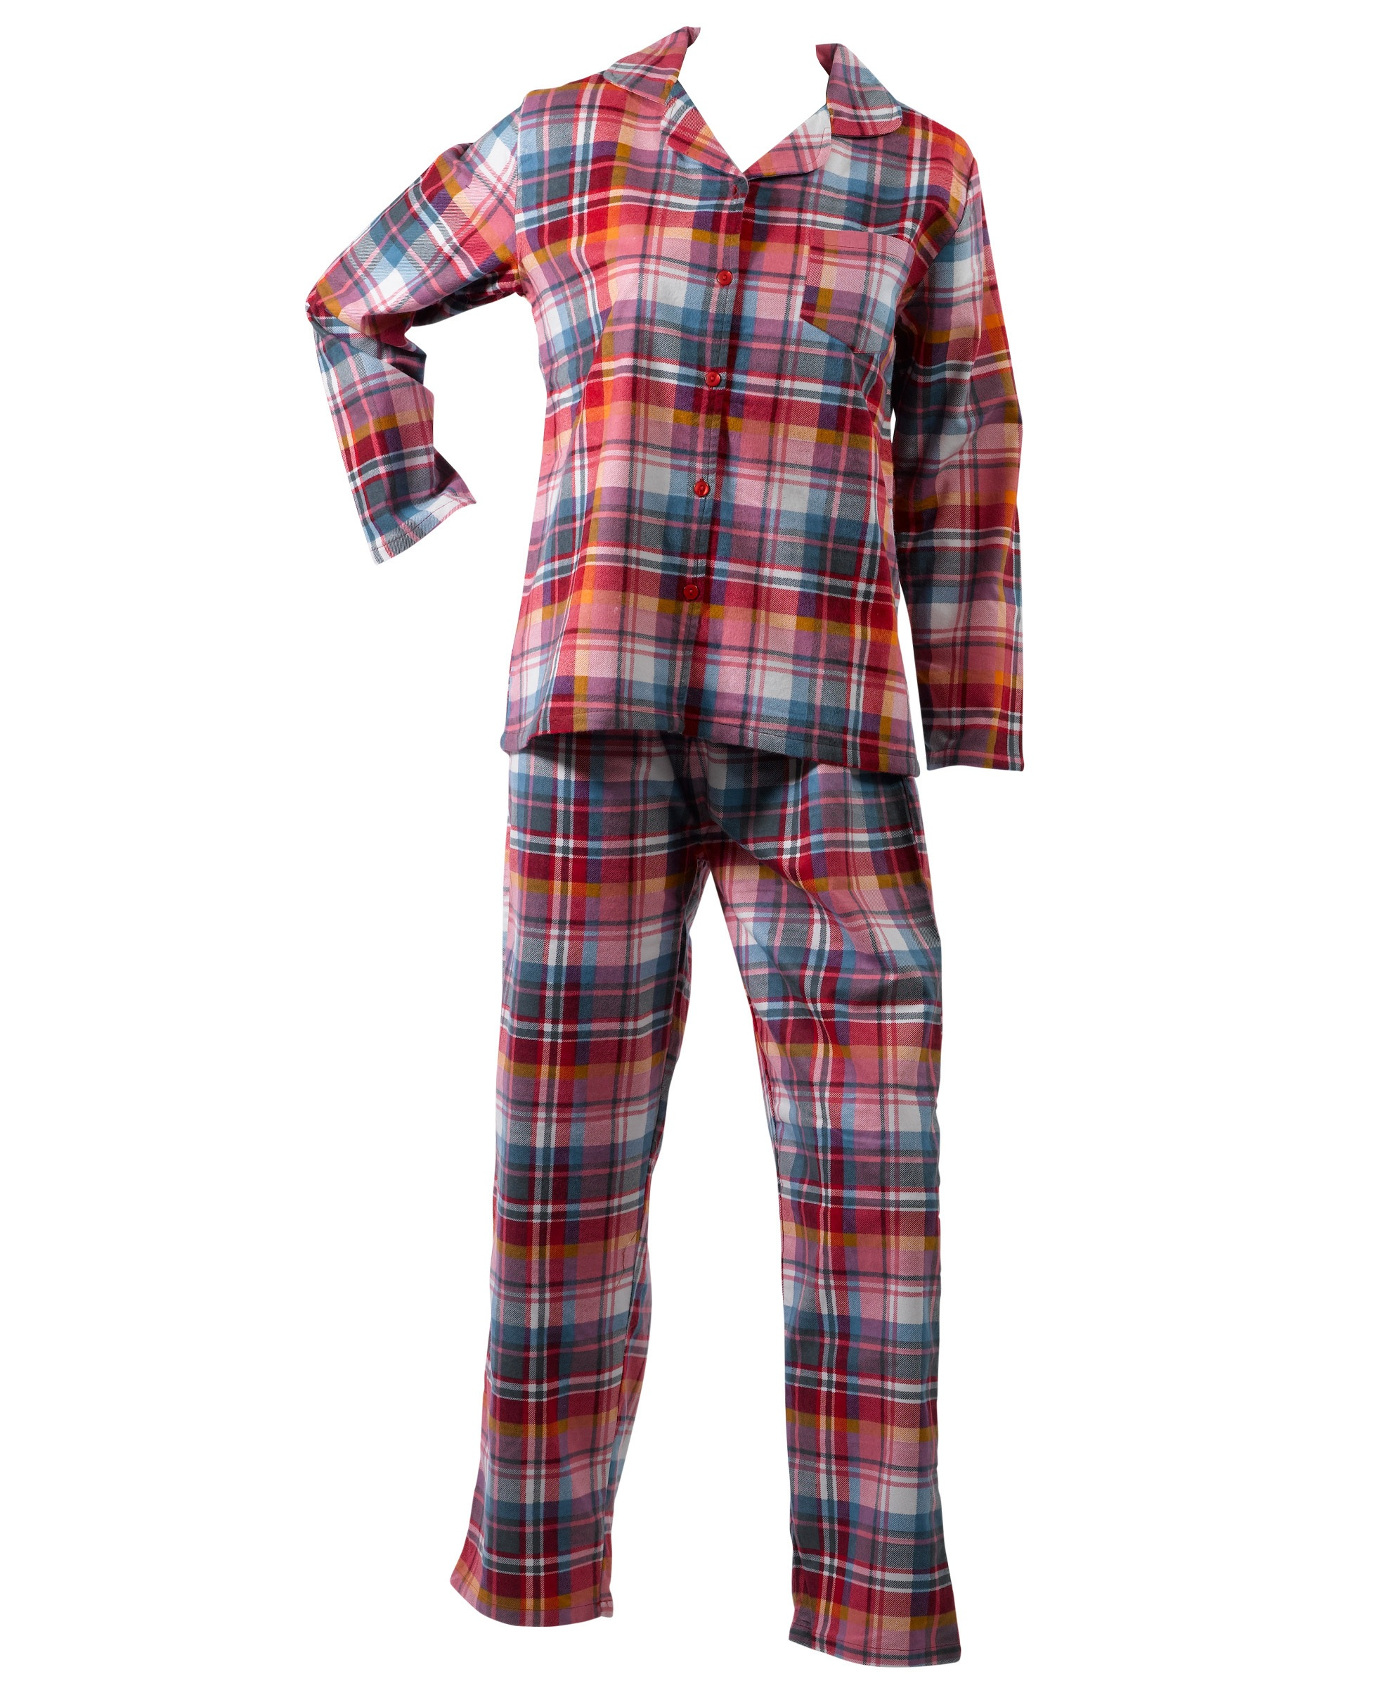 Buffalo check pajamas, women's pink buffalo check pj set, personalized ladies pajamas, pink and orange pajamas, pink gingham nightgown. Reviewed by helena grimes. 5 out of 5 stars. Jul 16, Buffalo check pajamas, women's pink buffalo check pj set, personalized ladies pajamas, pink and orange pajamas, pink gingham nightgown.